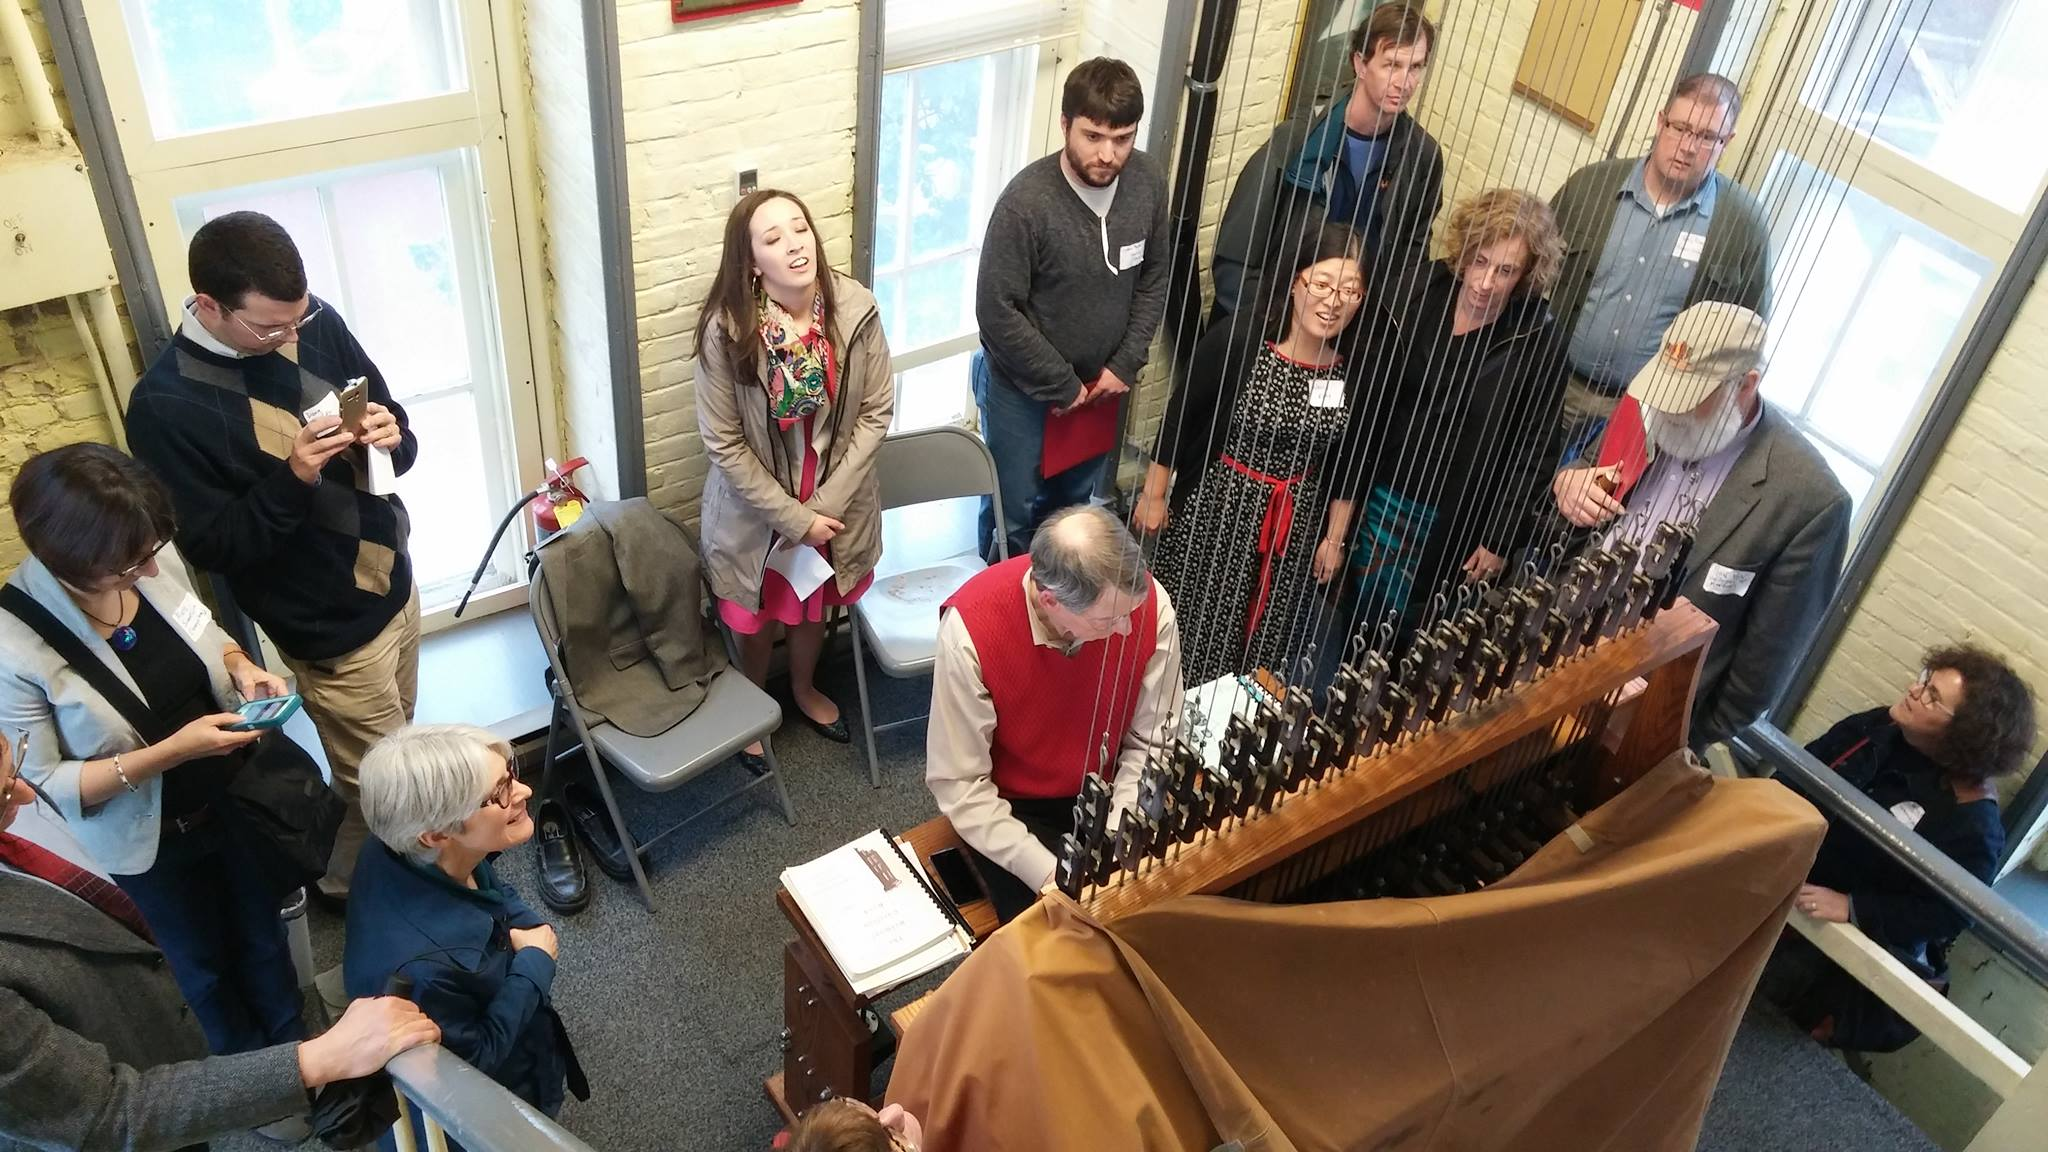 Dr. Richard Shadinger gives a demonstration on the Belmont University Carillon